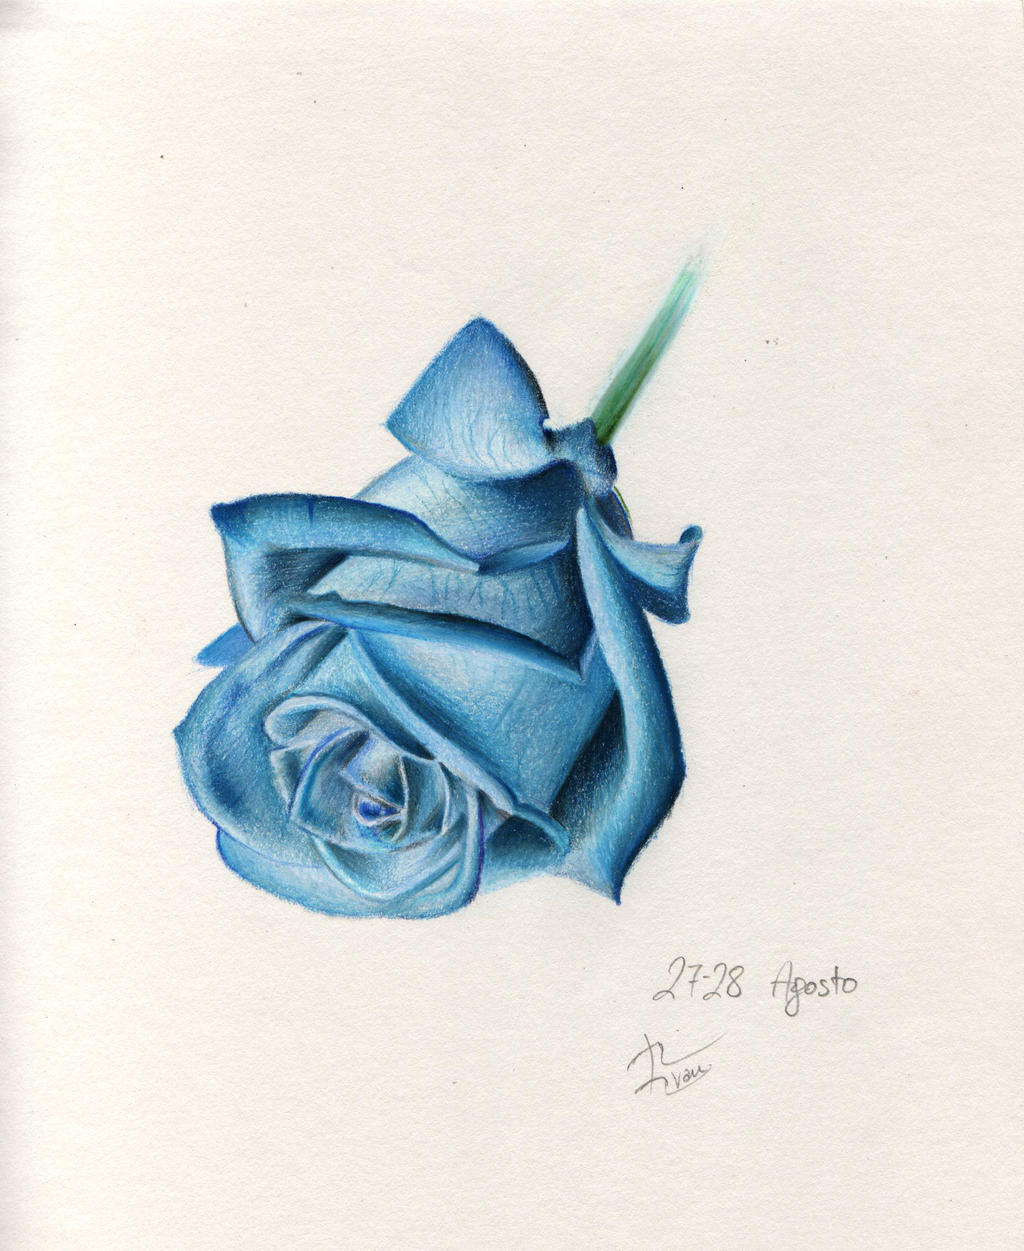 Blue rose by IvanJovanovic